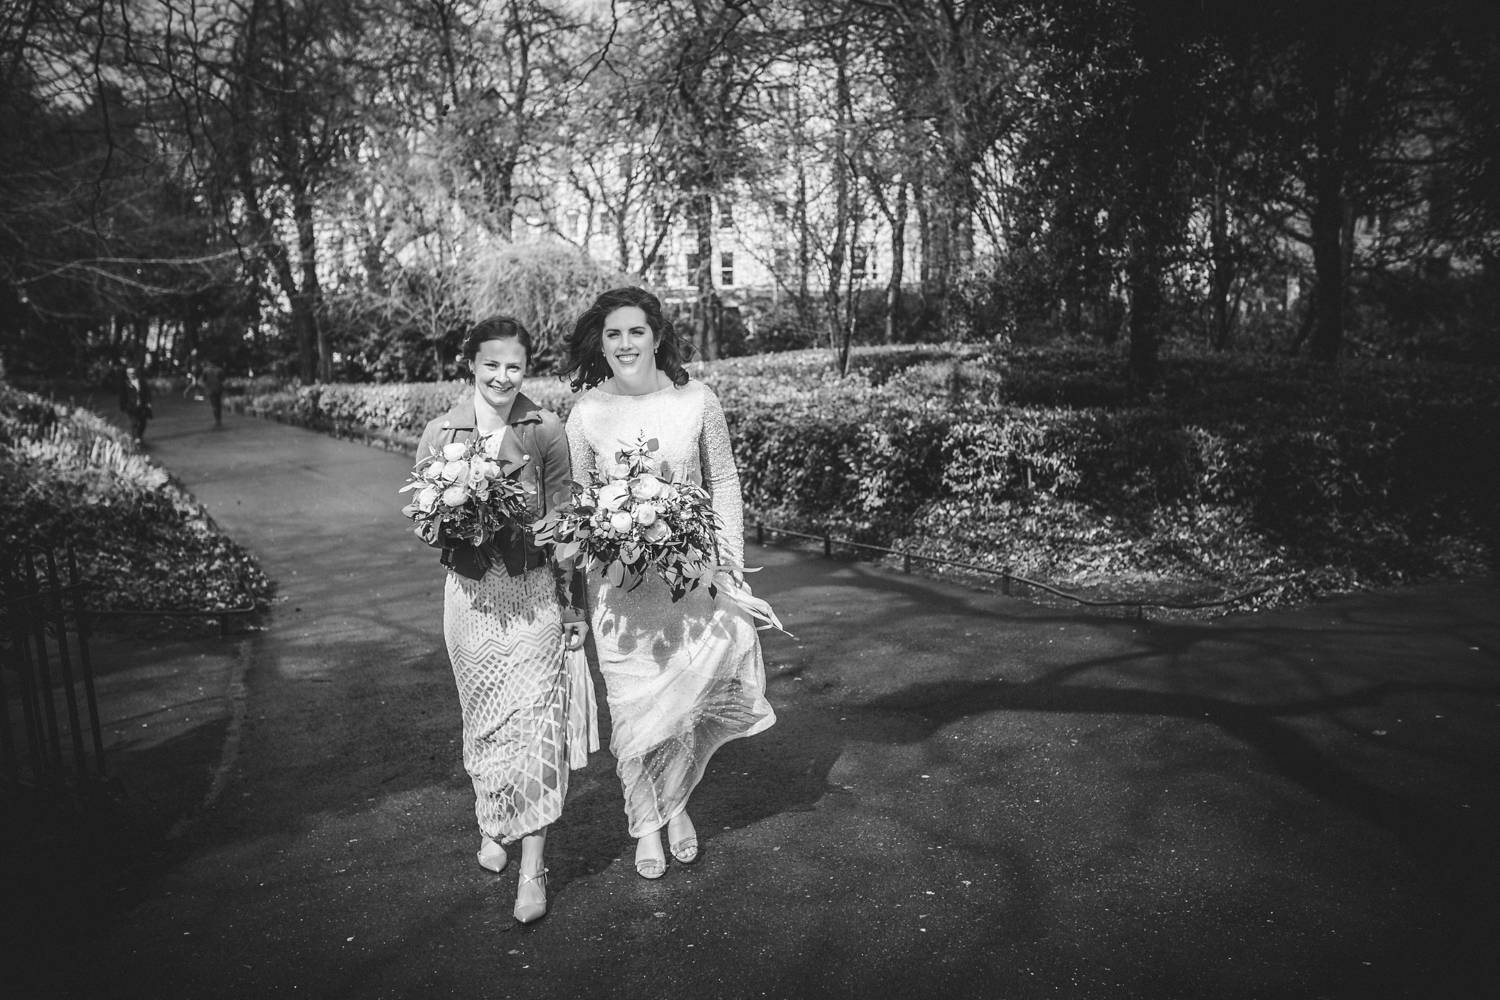 Fallon and Byrne wedding-22.jpg